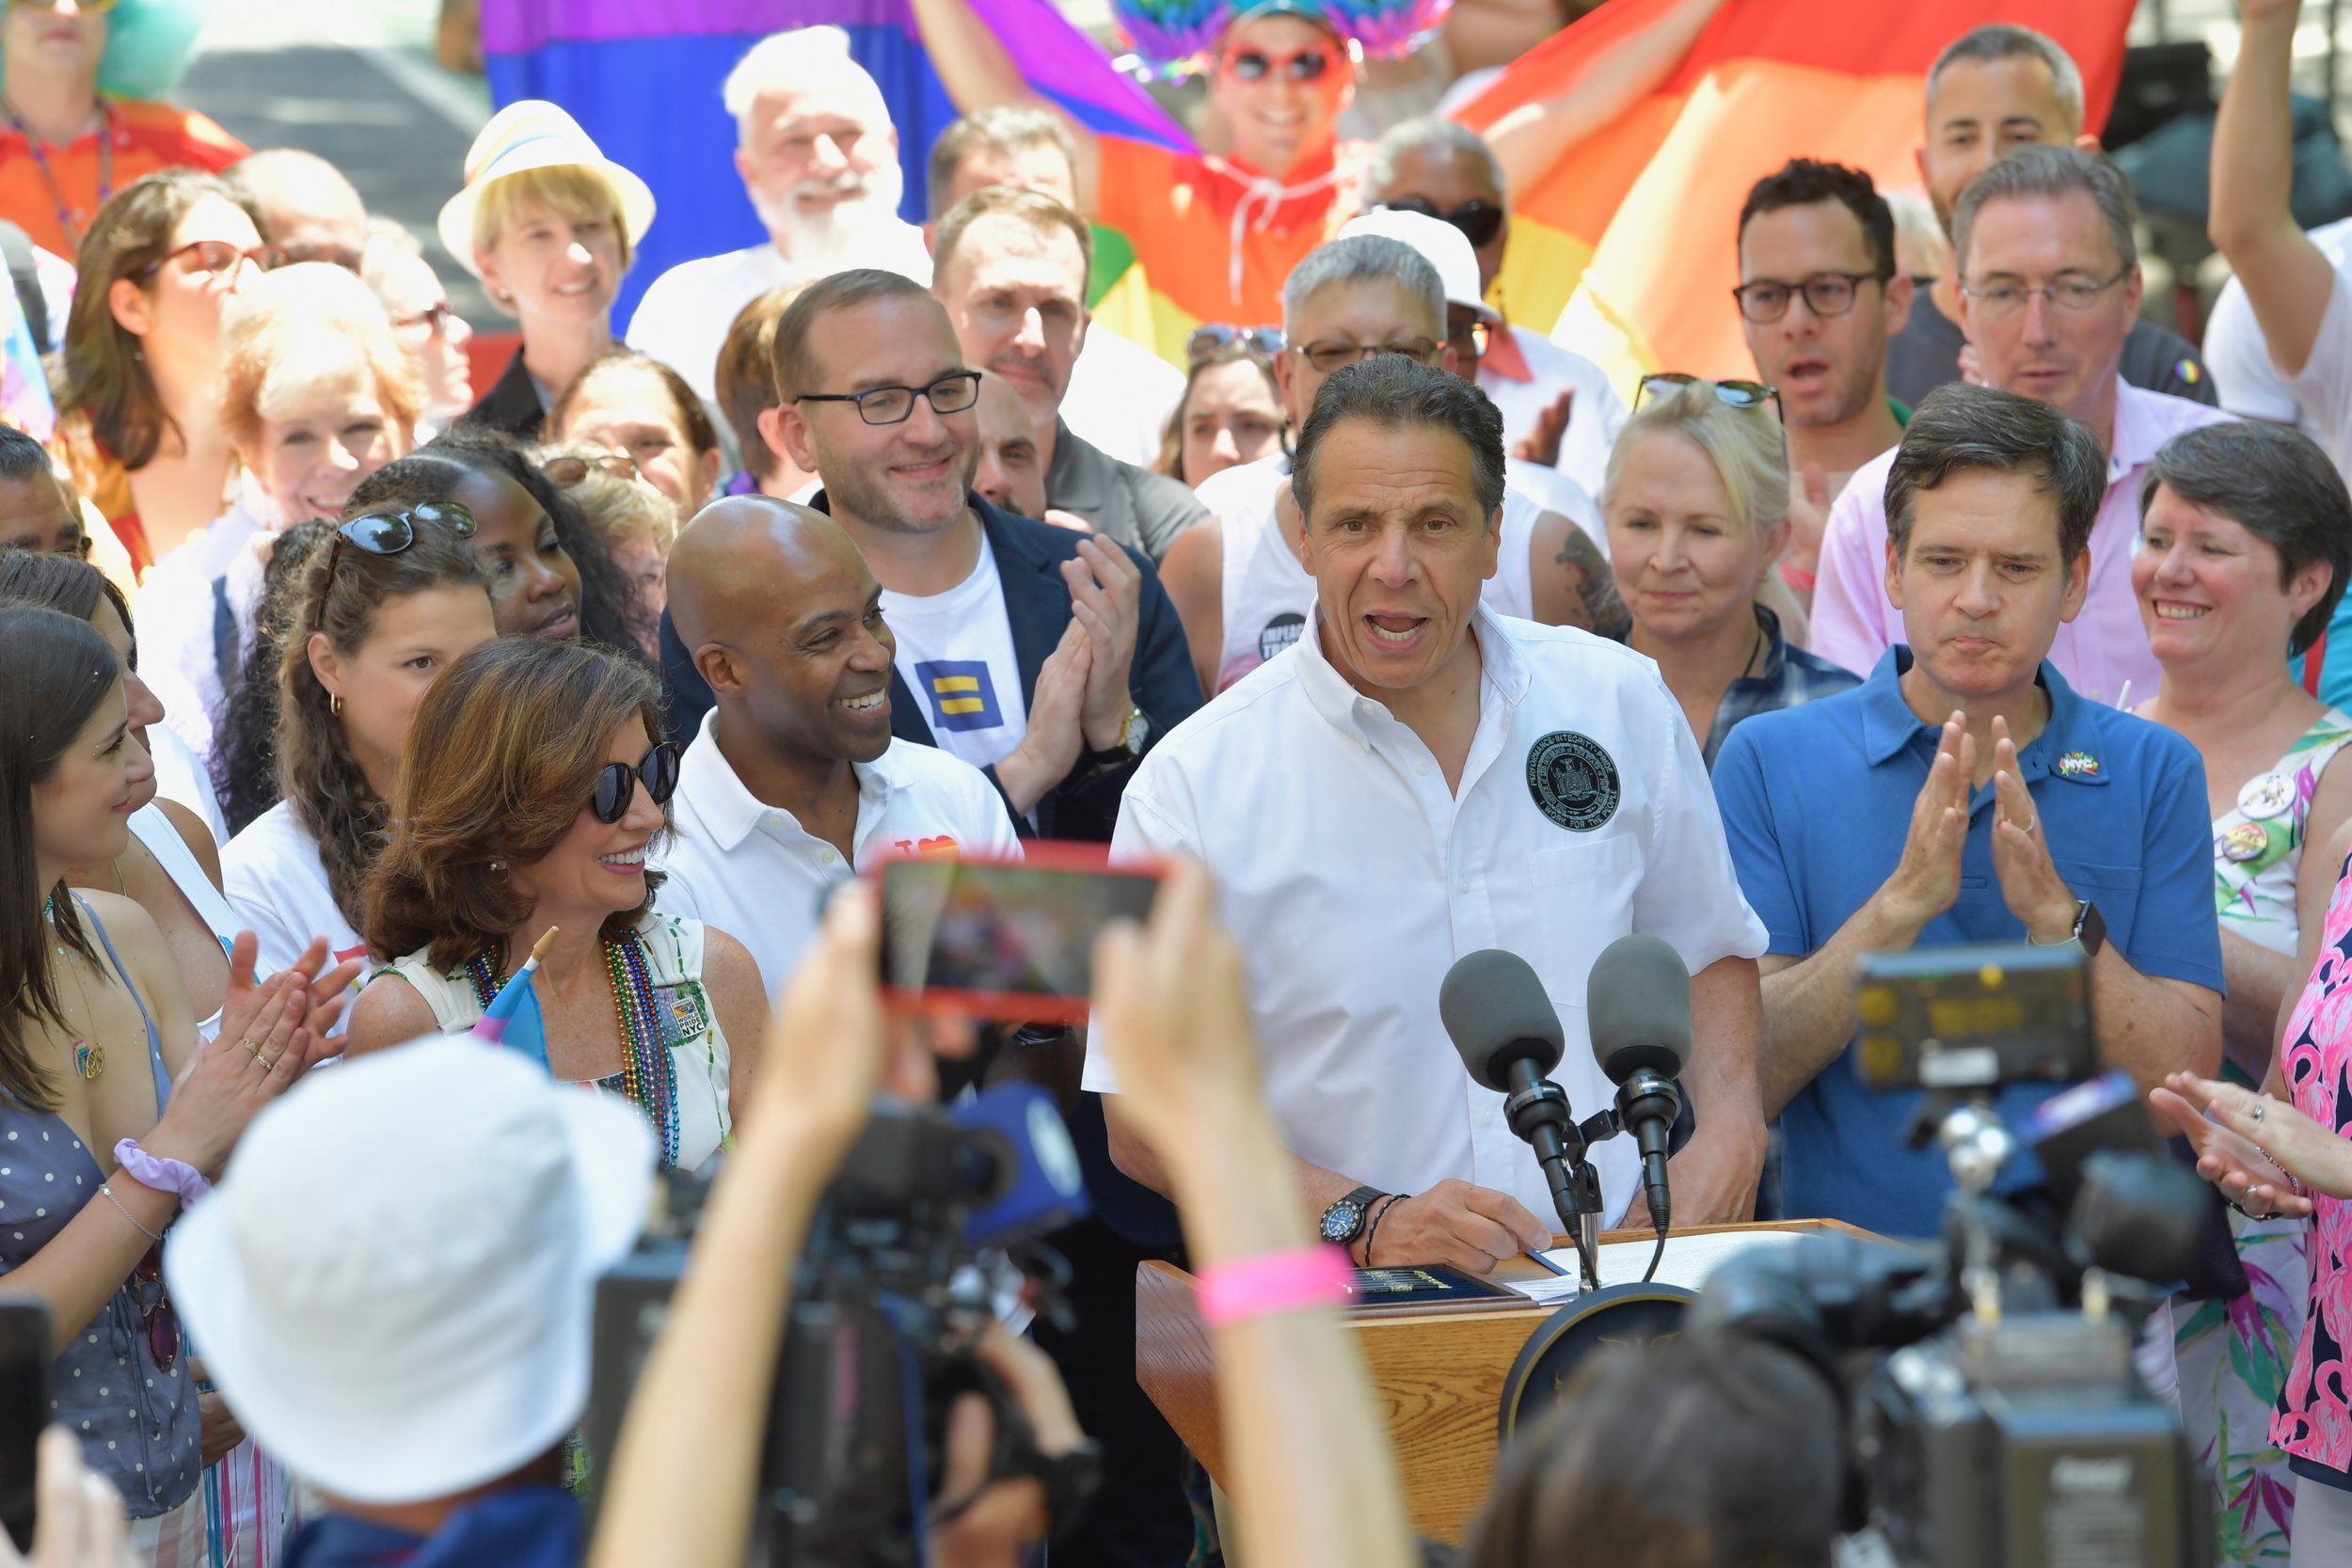 Gov. Andrew Cuomo talks to reporters before kicking off the 2019 WorldPride/Stonewall50 Parade in New York City. Photo by Don Pollard/Office of Gov. Andrew M. Cuomo.